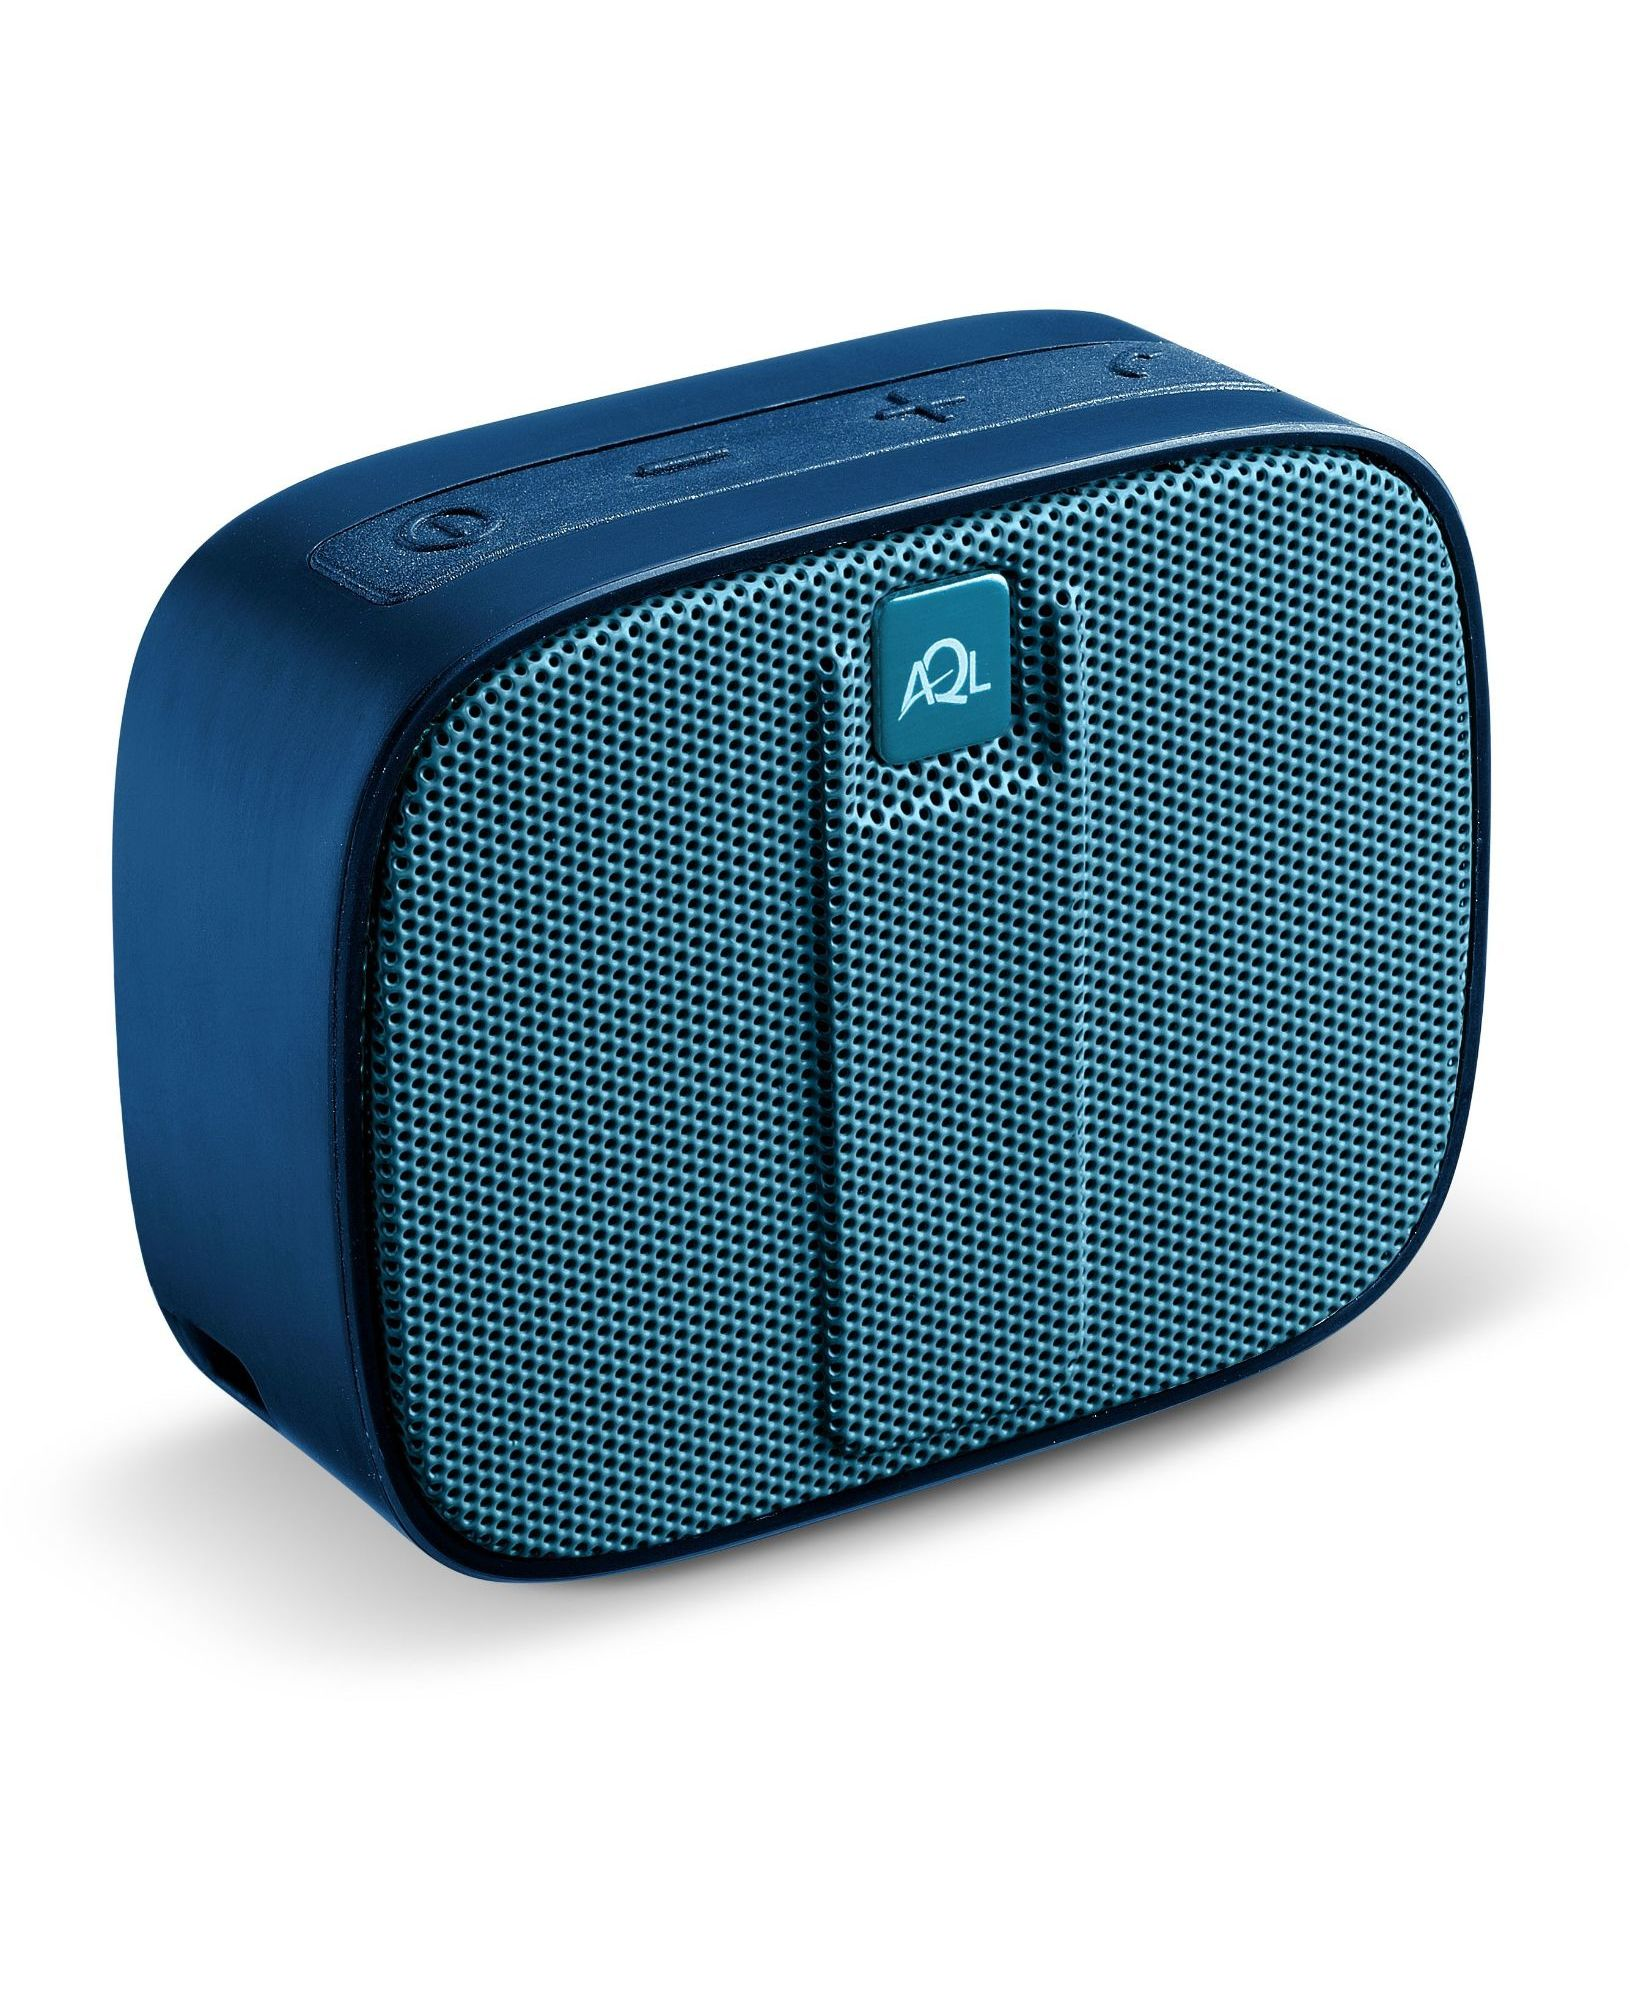 Fizzy, mini speaker, BT, blue